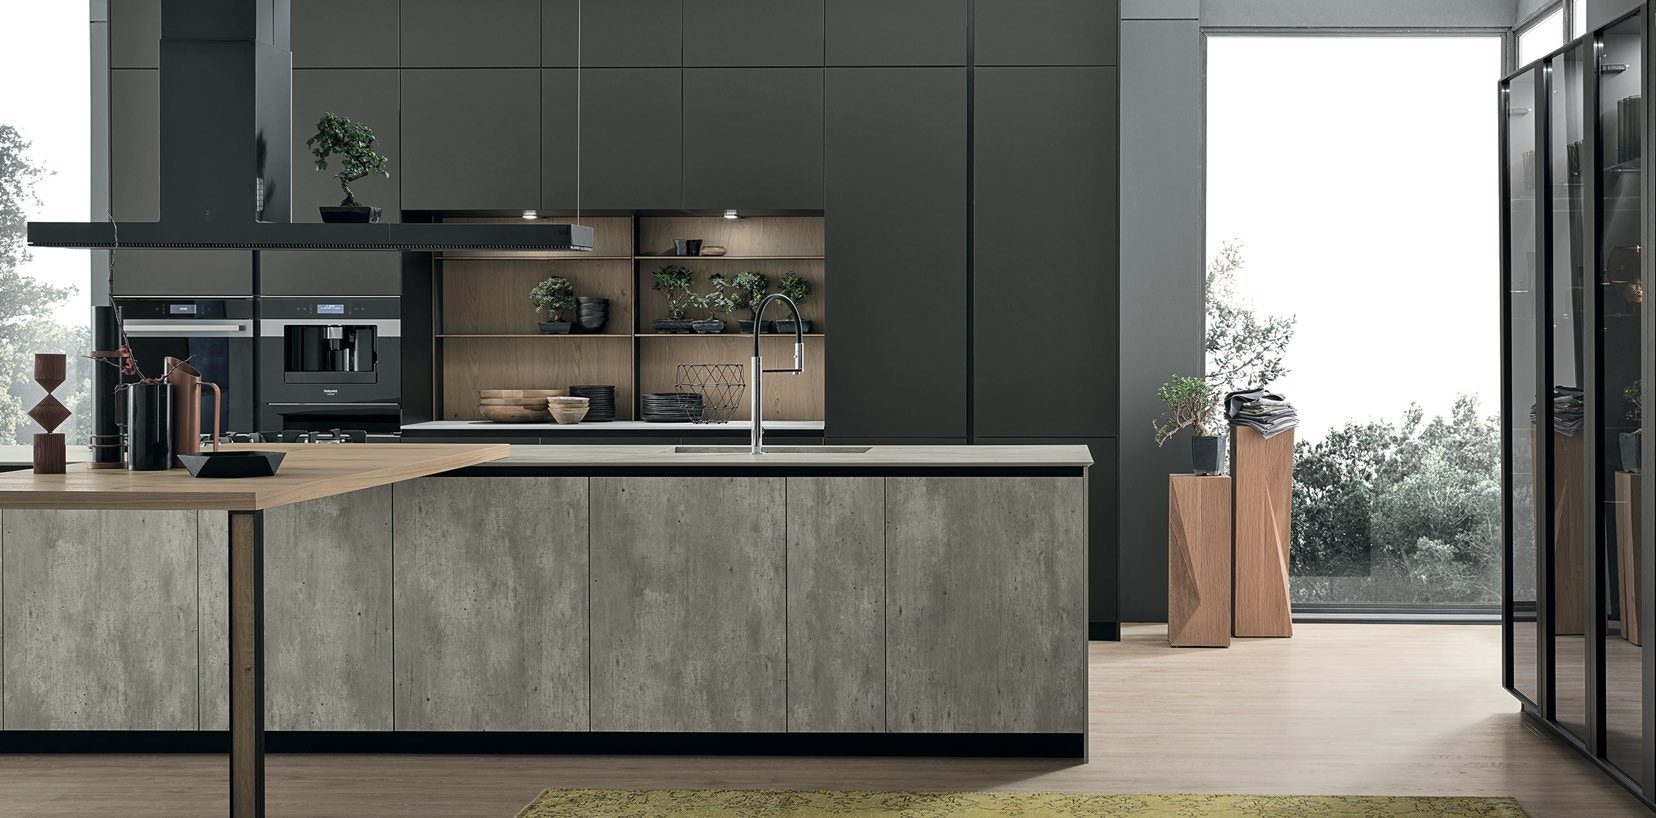 Stosa Cucine Moderne.Stosa Cucine Modern And Classic Kitchens For Over 50 Years